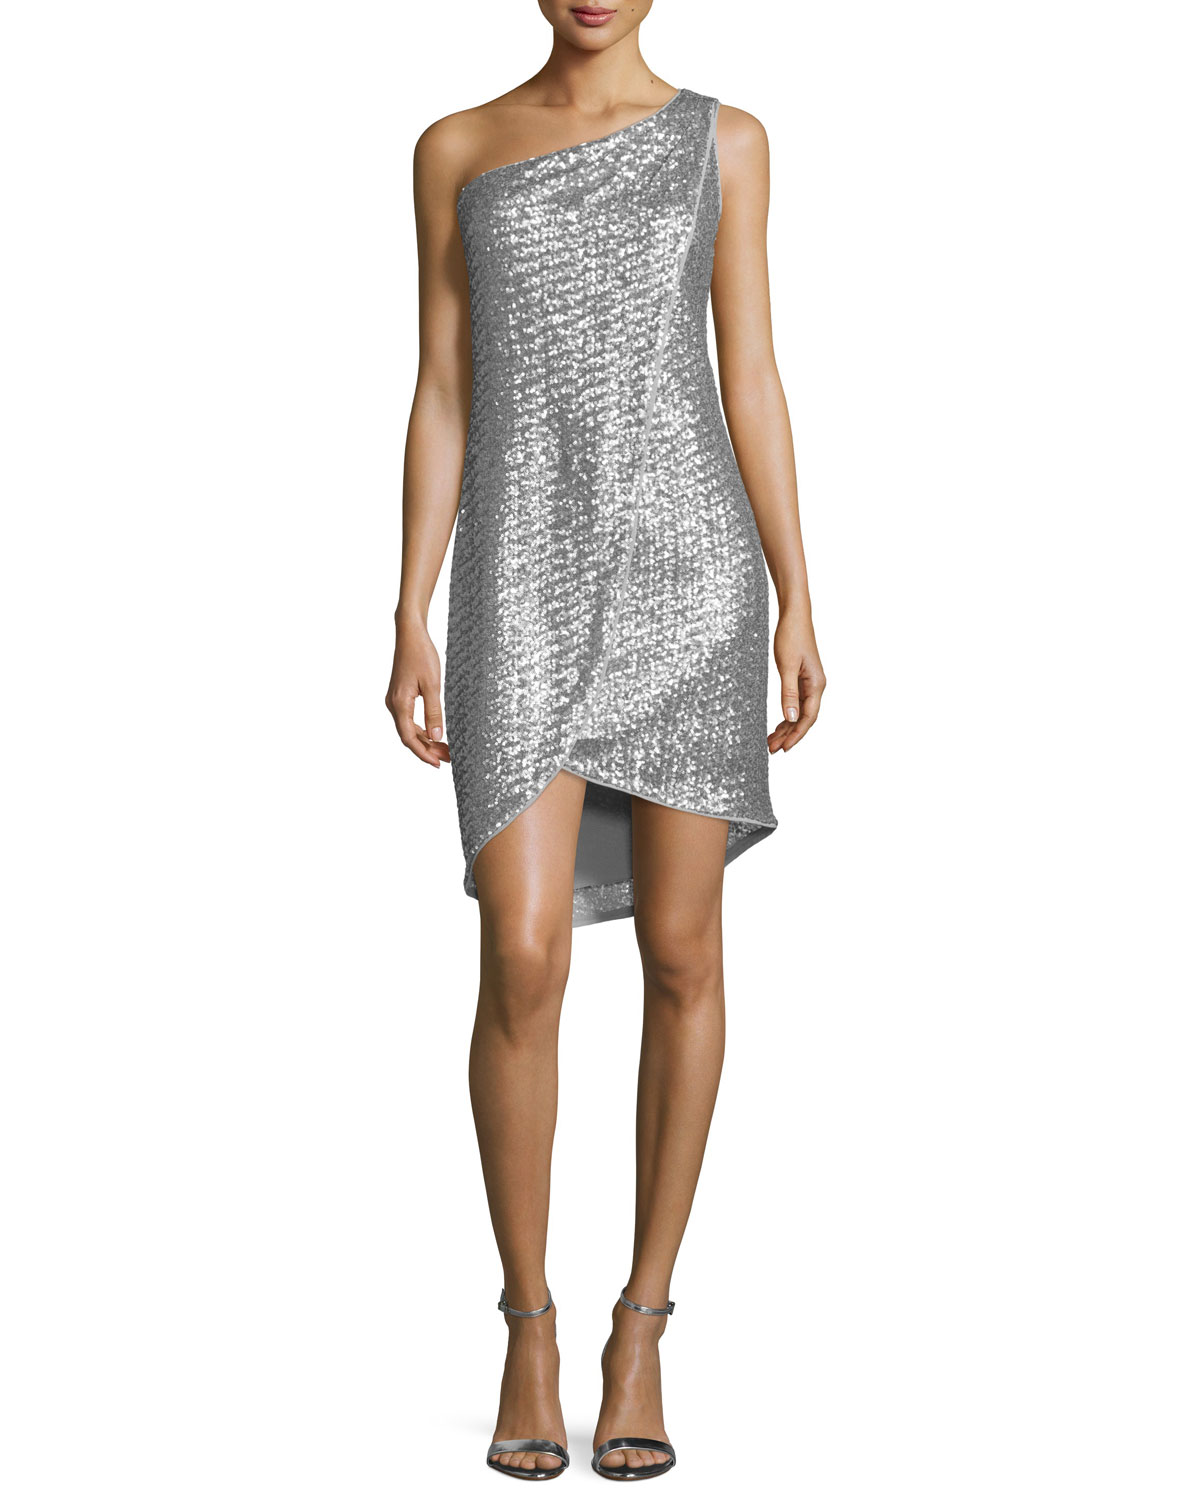 One-Shoulder Embellished Faux-Wrap Dress, Vapor/Silver, Size: 0 - Halston Heritage